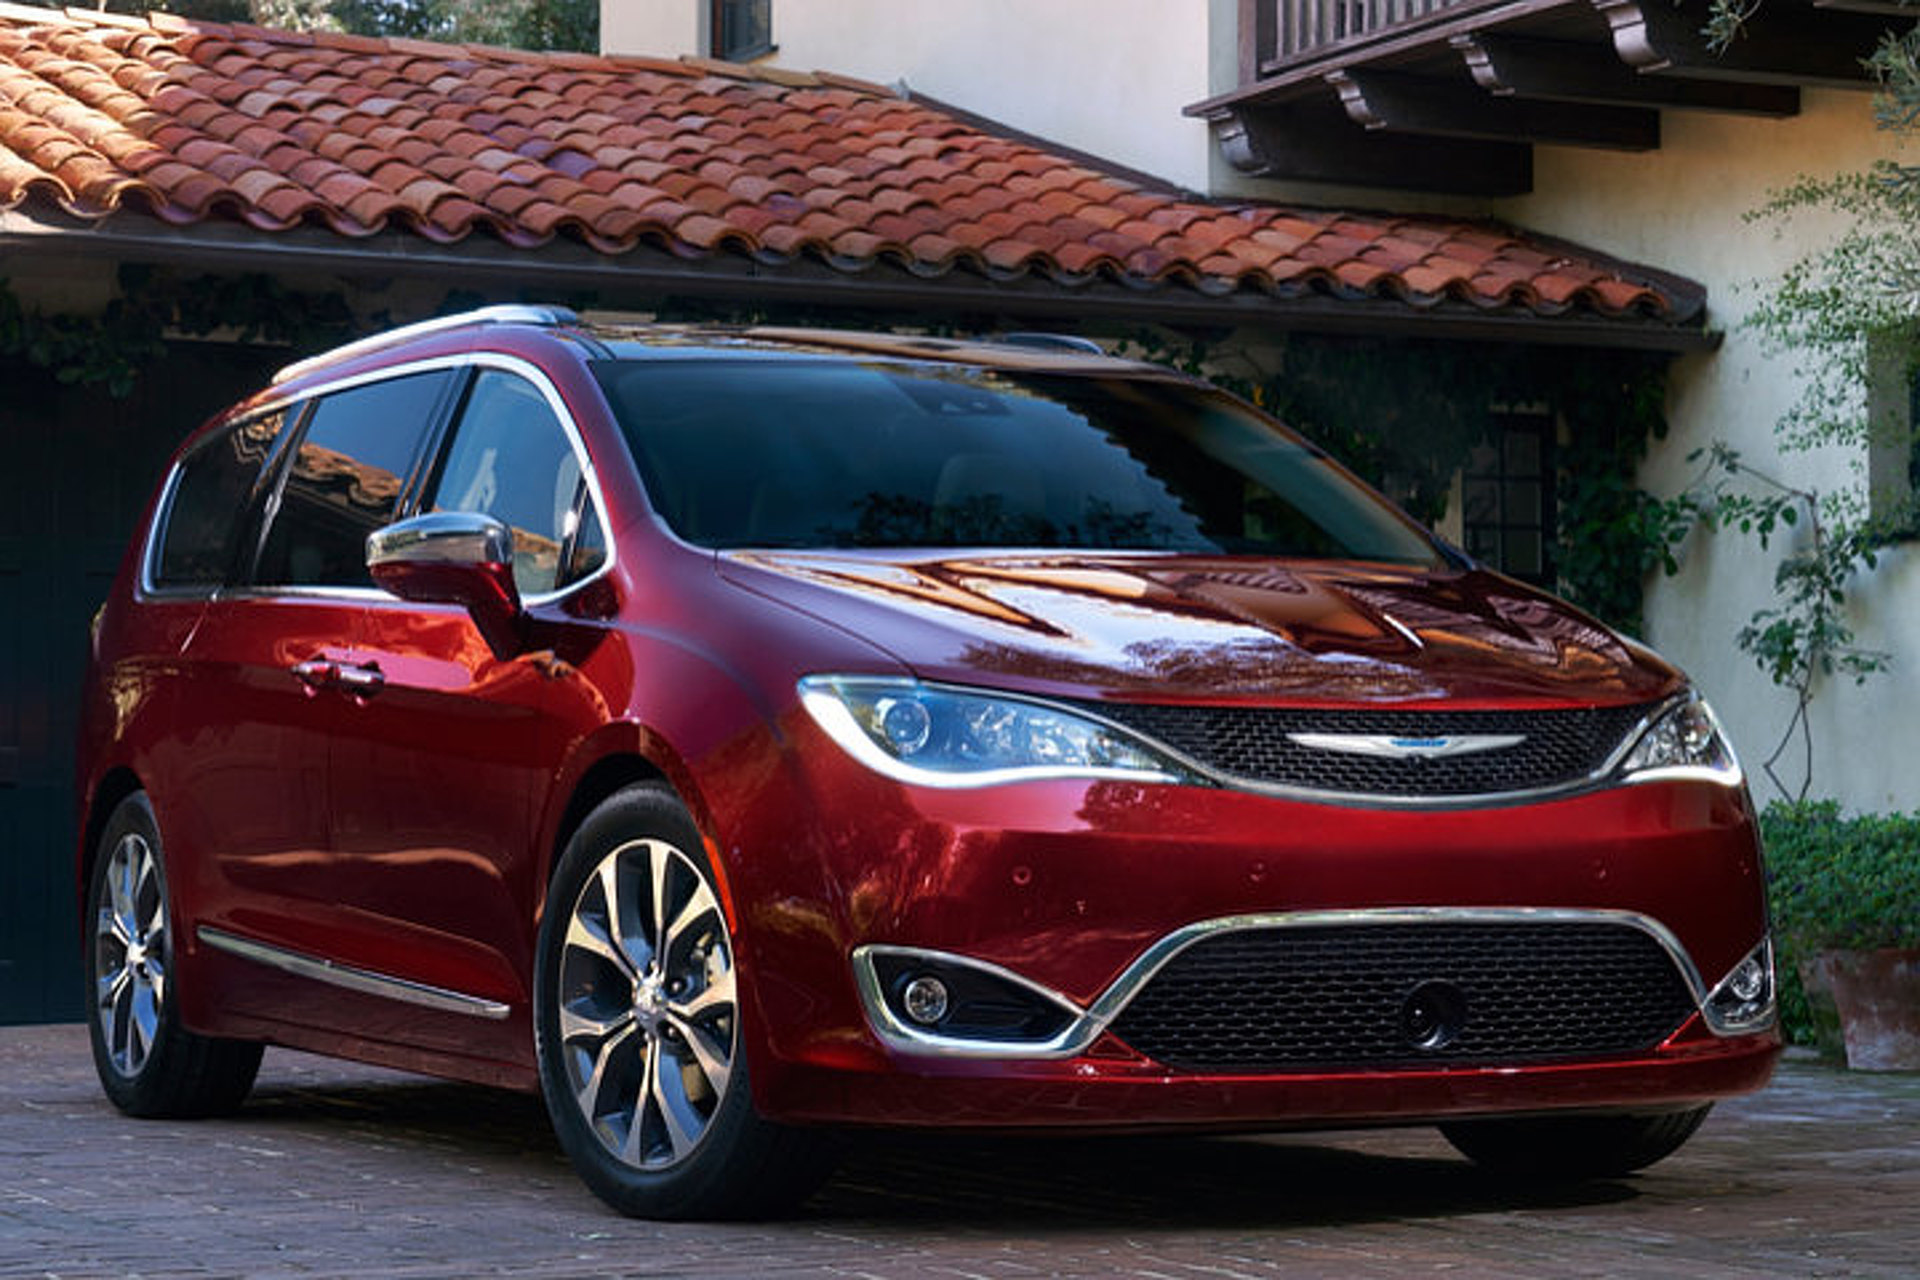 minivan sleek all the gallery pacifica chrysler introducing new home a